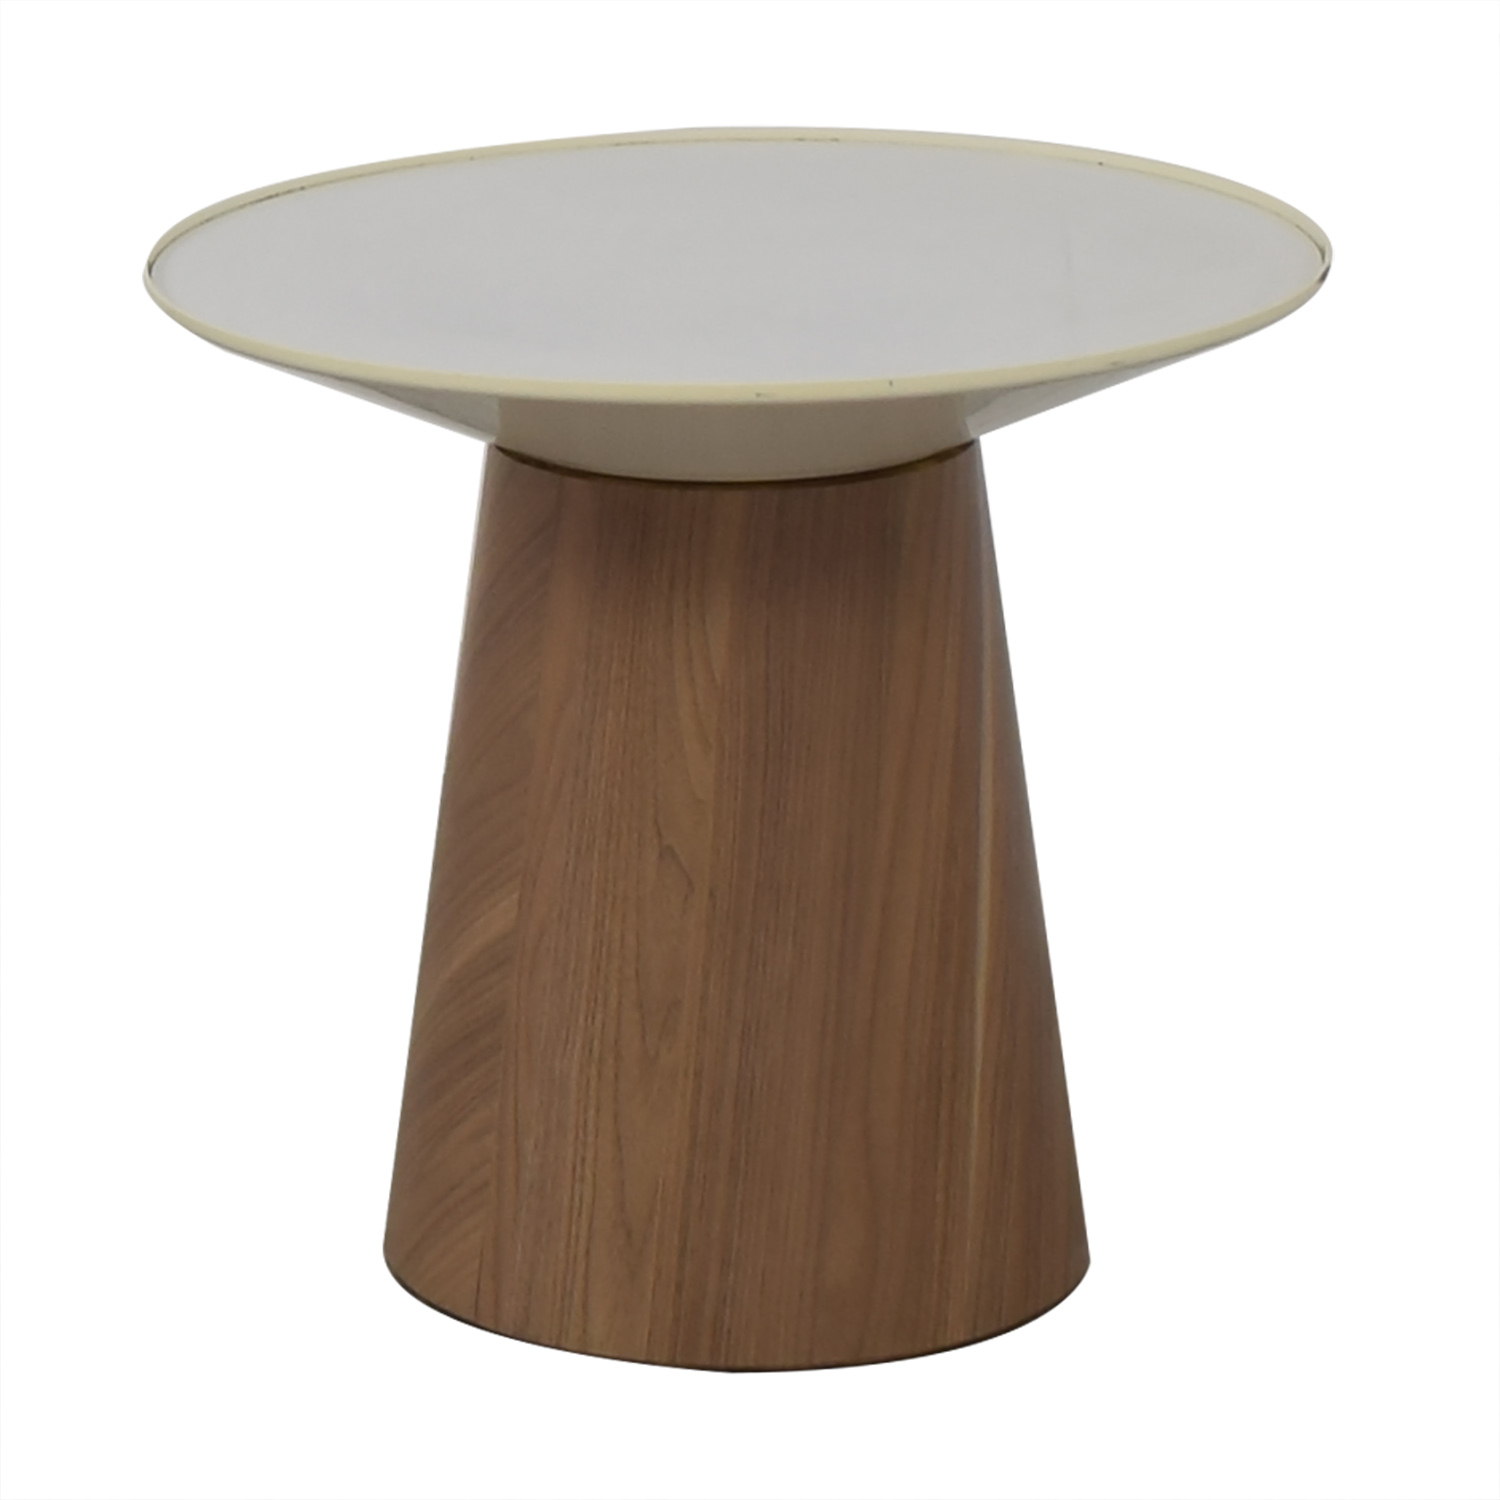 Steelcase Turnstone Steelcase Turnstone Campfire Round Paper Table white on brown